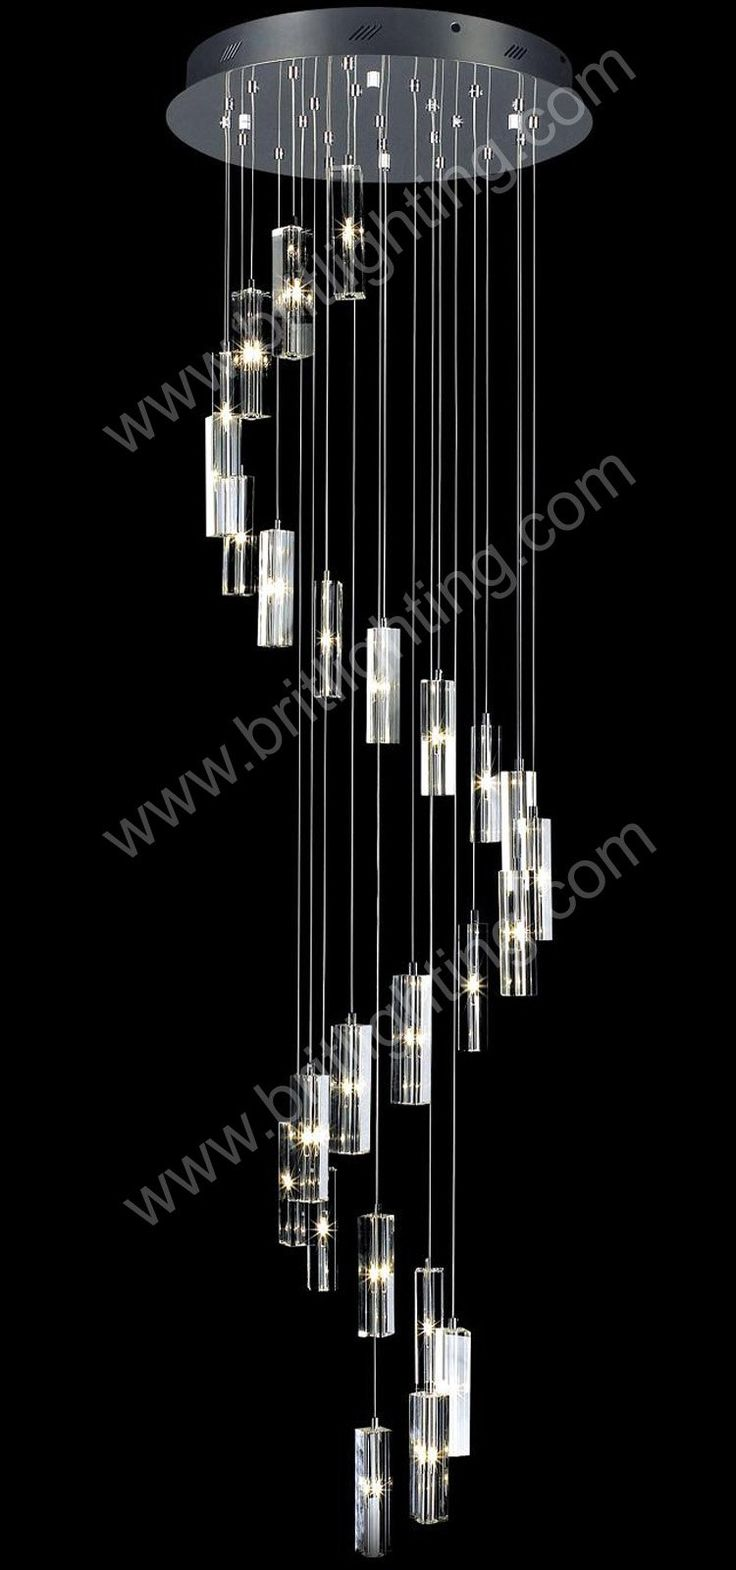 stepwise chandeliers 25 light Modern Spiral Chandelier use for stair well  drop light Spiral Crystal chandelier light US $265.00